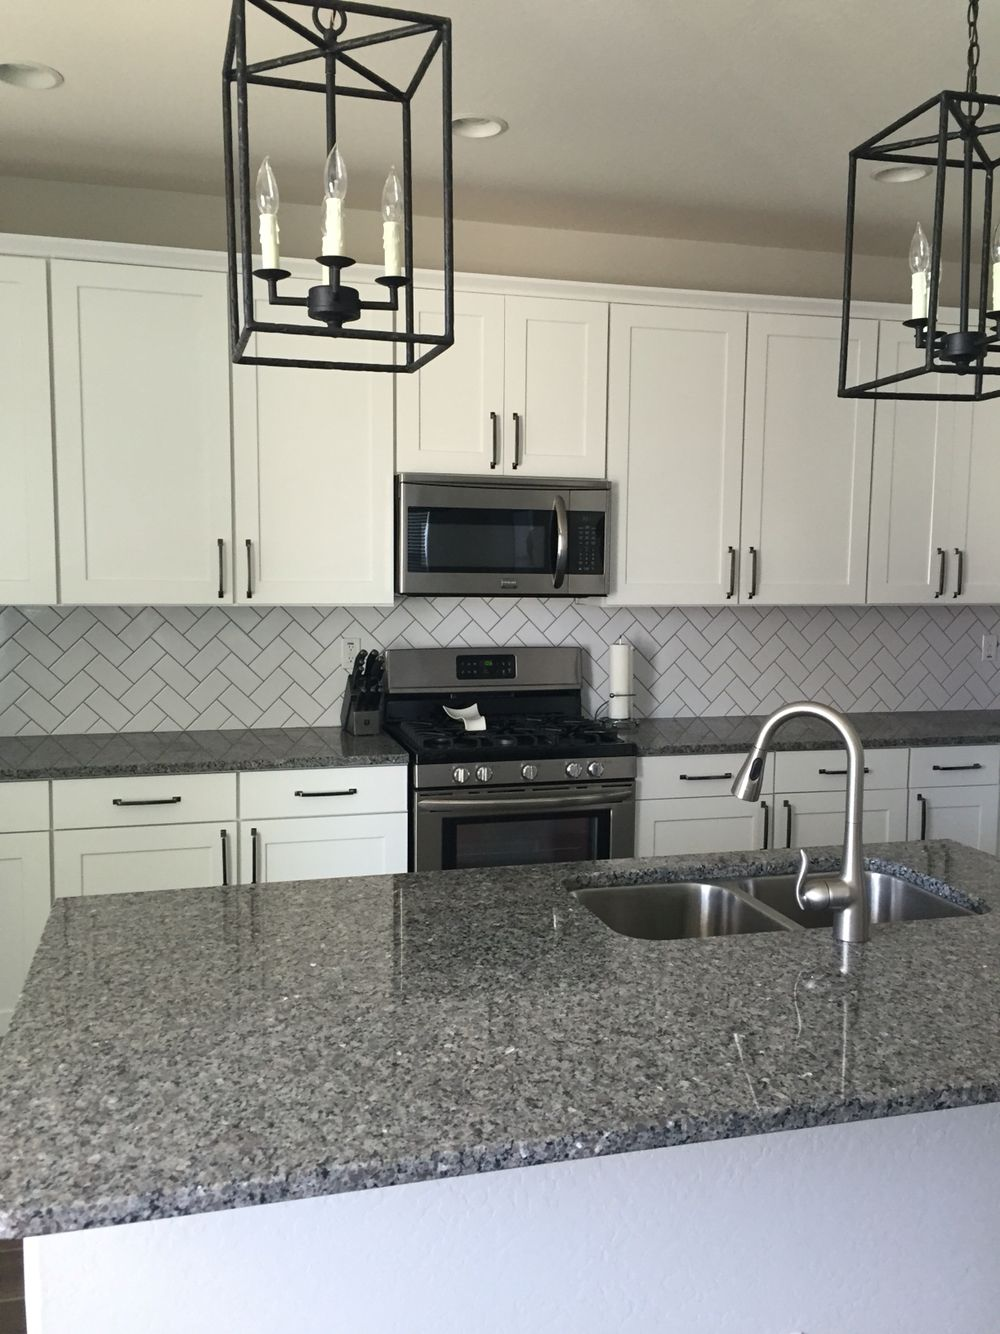 white kitchen cabinets new caledonia granite countertop subway ...